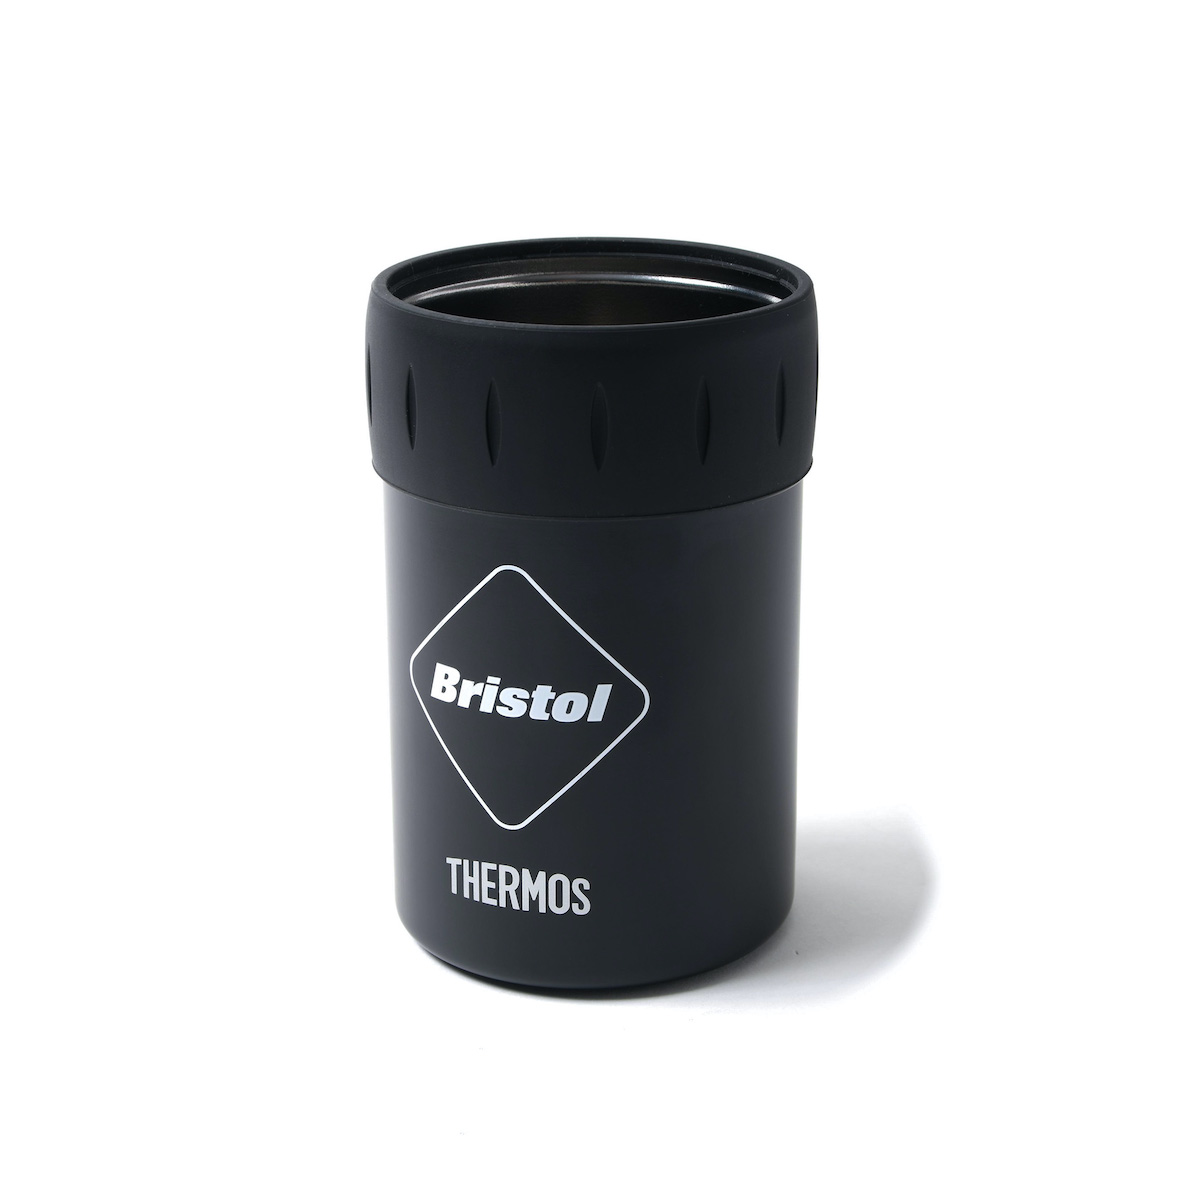 F.C.Real Bristol / THERMOS EMBLEM INSULATION CAN HOLDER